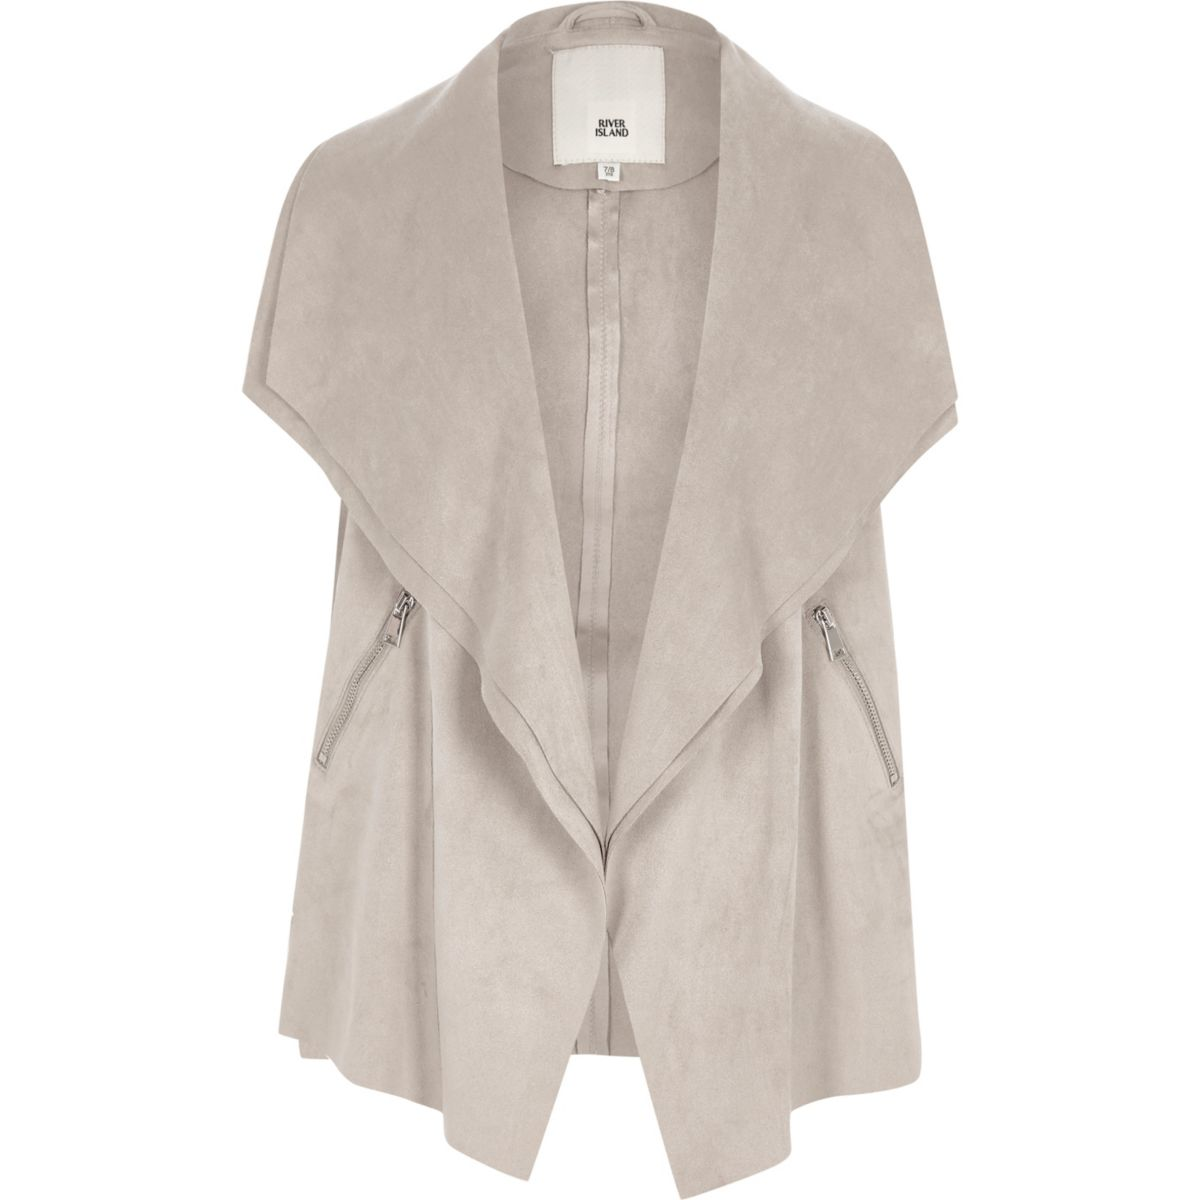 Girls grey sleeveless waterfall jacket